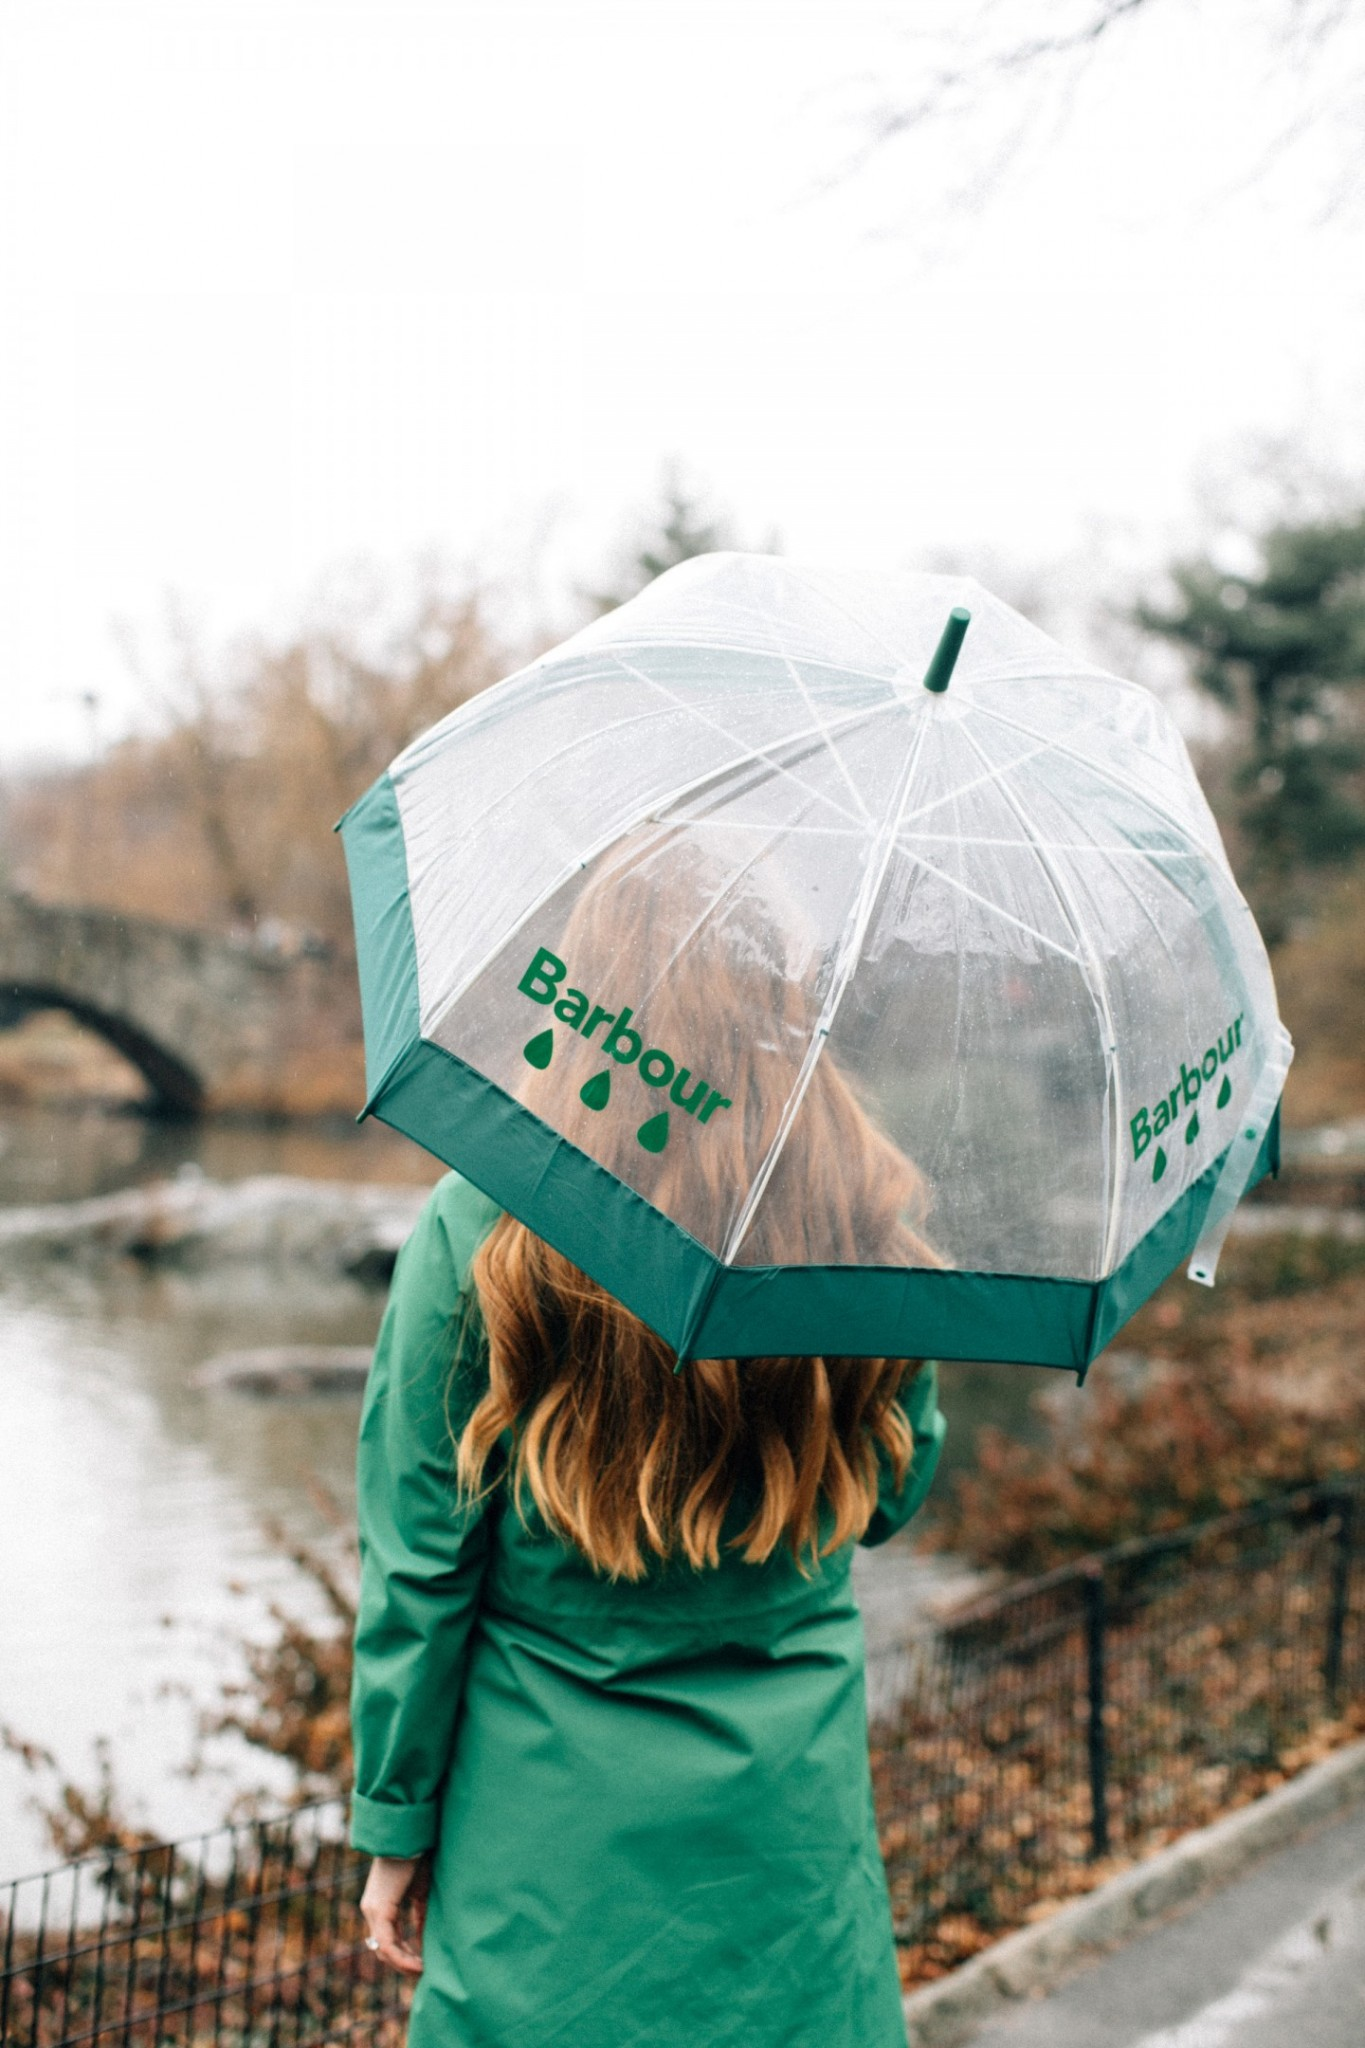 Lifestyle blogger Mollie Moore shares the new Weather Comfort Collection from Barbour | The new Barbour Weather Comfort Collection featured by top London fashion blog, Mollie Moore: the Sleet Jacket